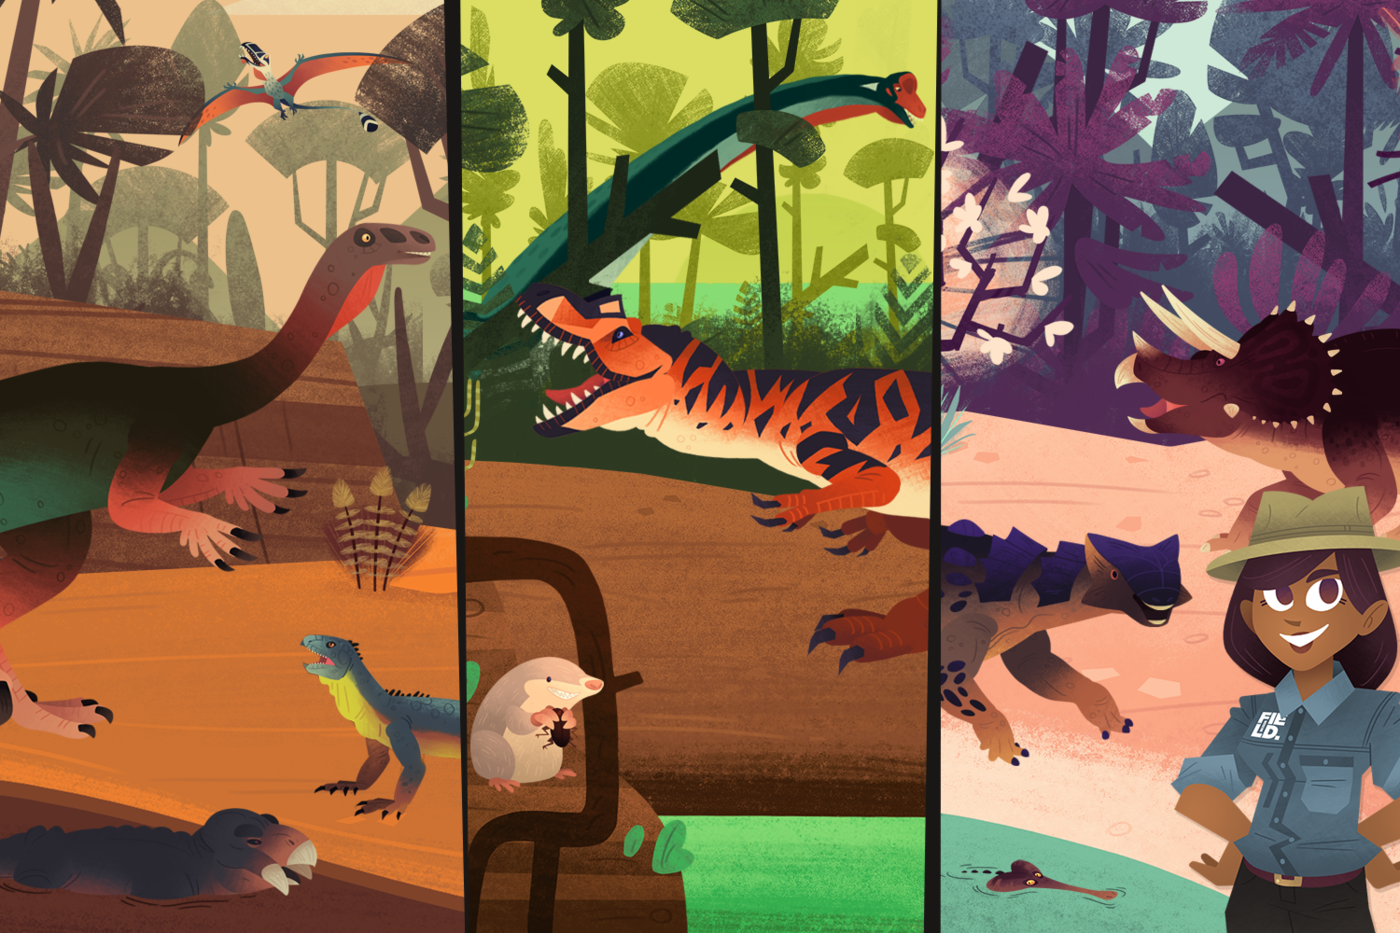 A composite image featuring animated stills from the game, Mission to the Mesozoic. The image contains three panes, each featuring various dinosaurs, mammals, and plants from the Cretaceous. A scientist appears in the third frame, smiling at the user with her hands on her hips.